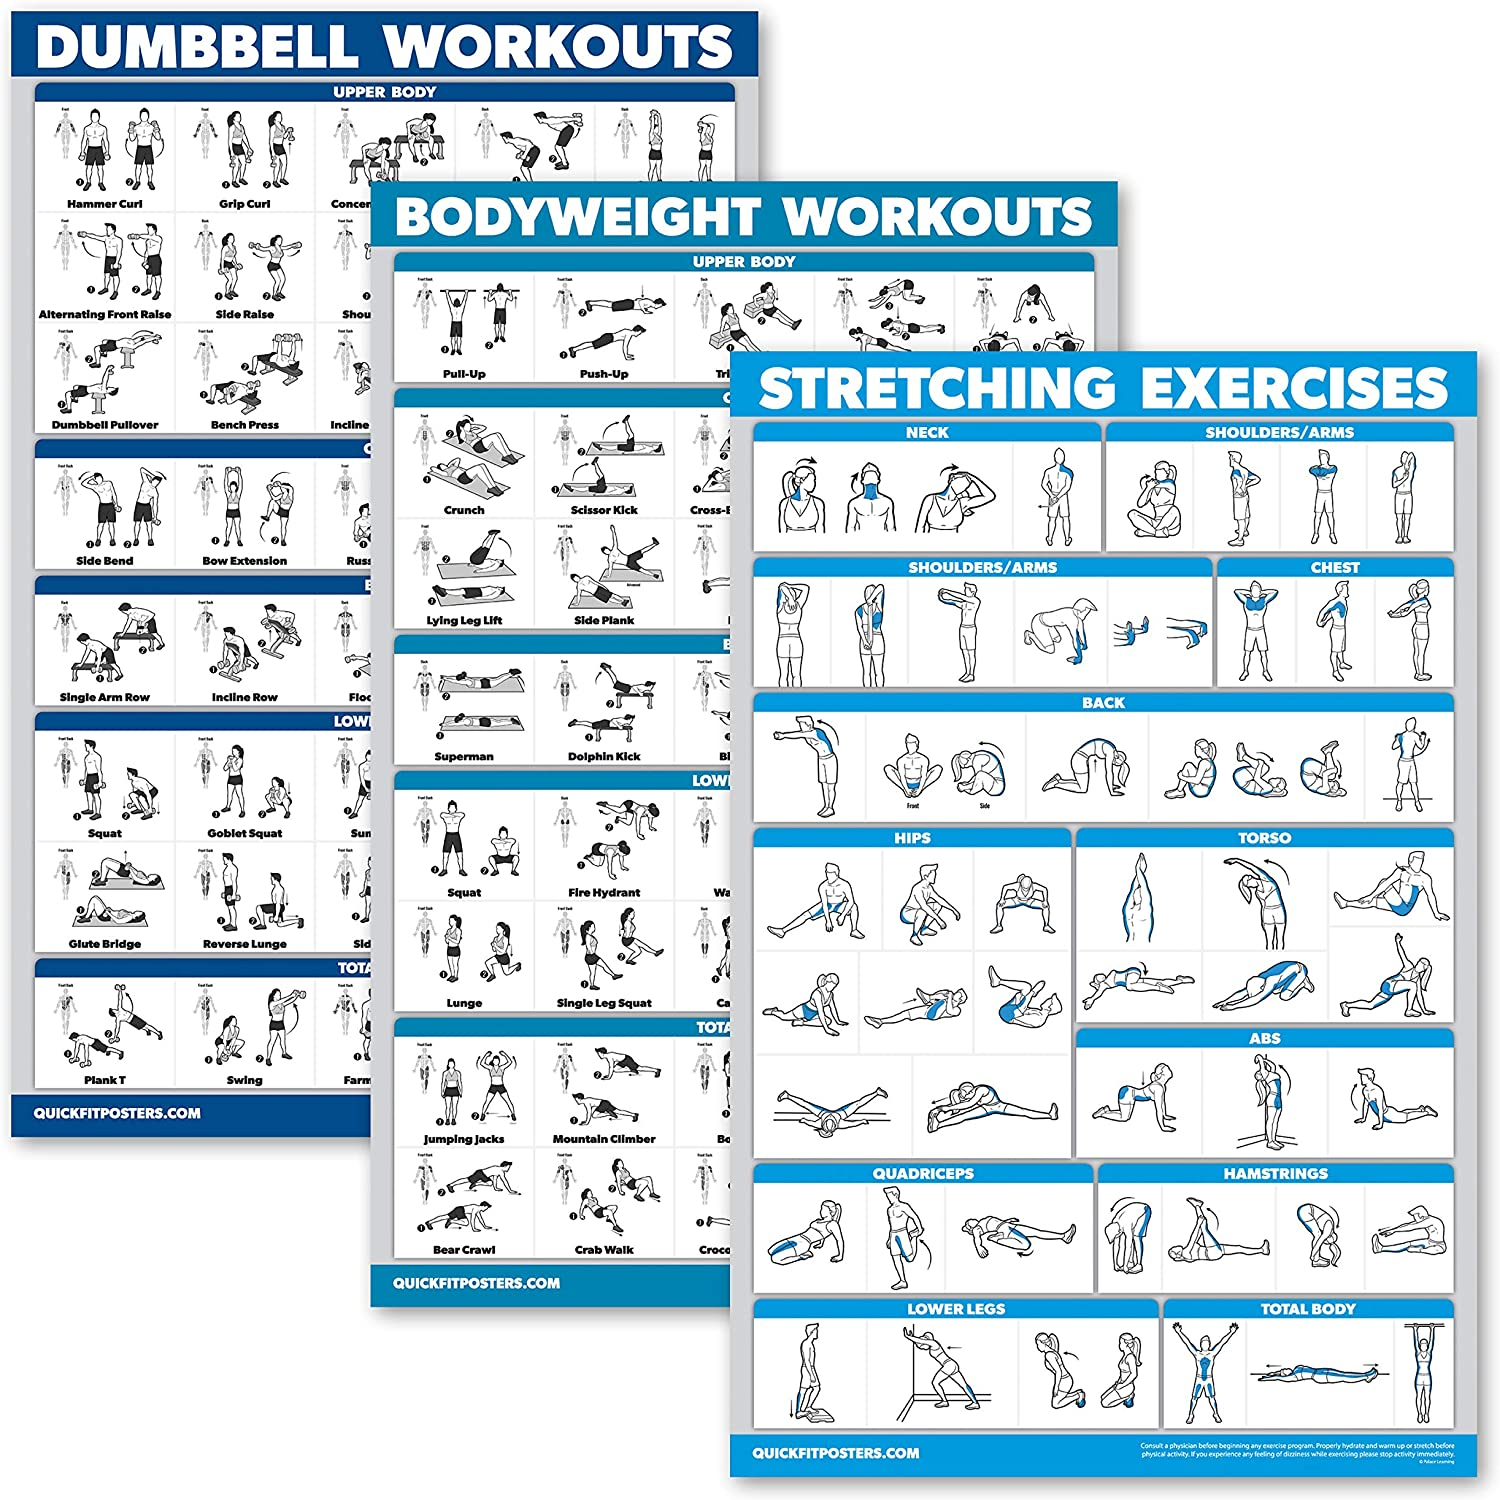 QuickFit 3 Pack - Dumbbell Workouts + Bodyweight Exercises + Stretching Routine Poster Set - Set of 3 Workout Charts